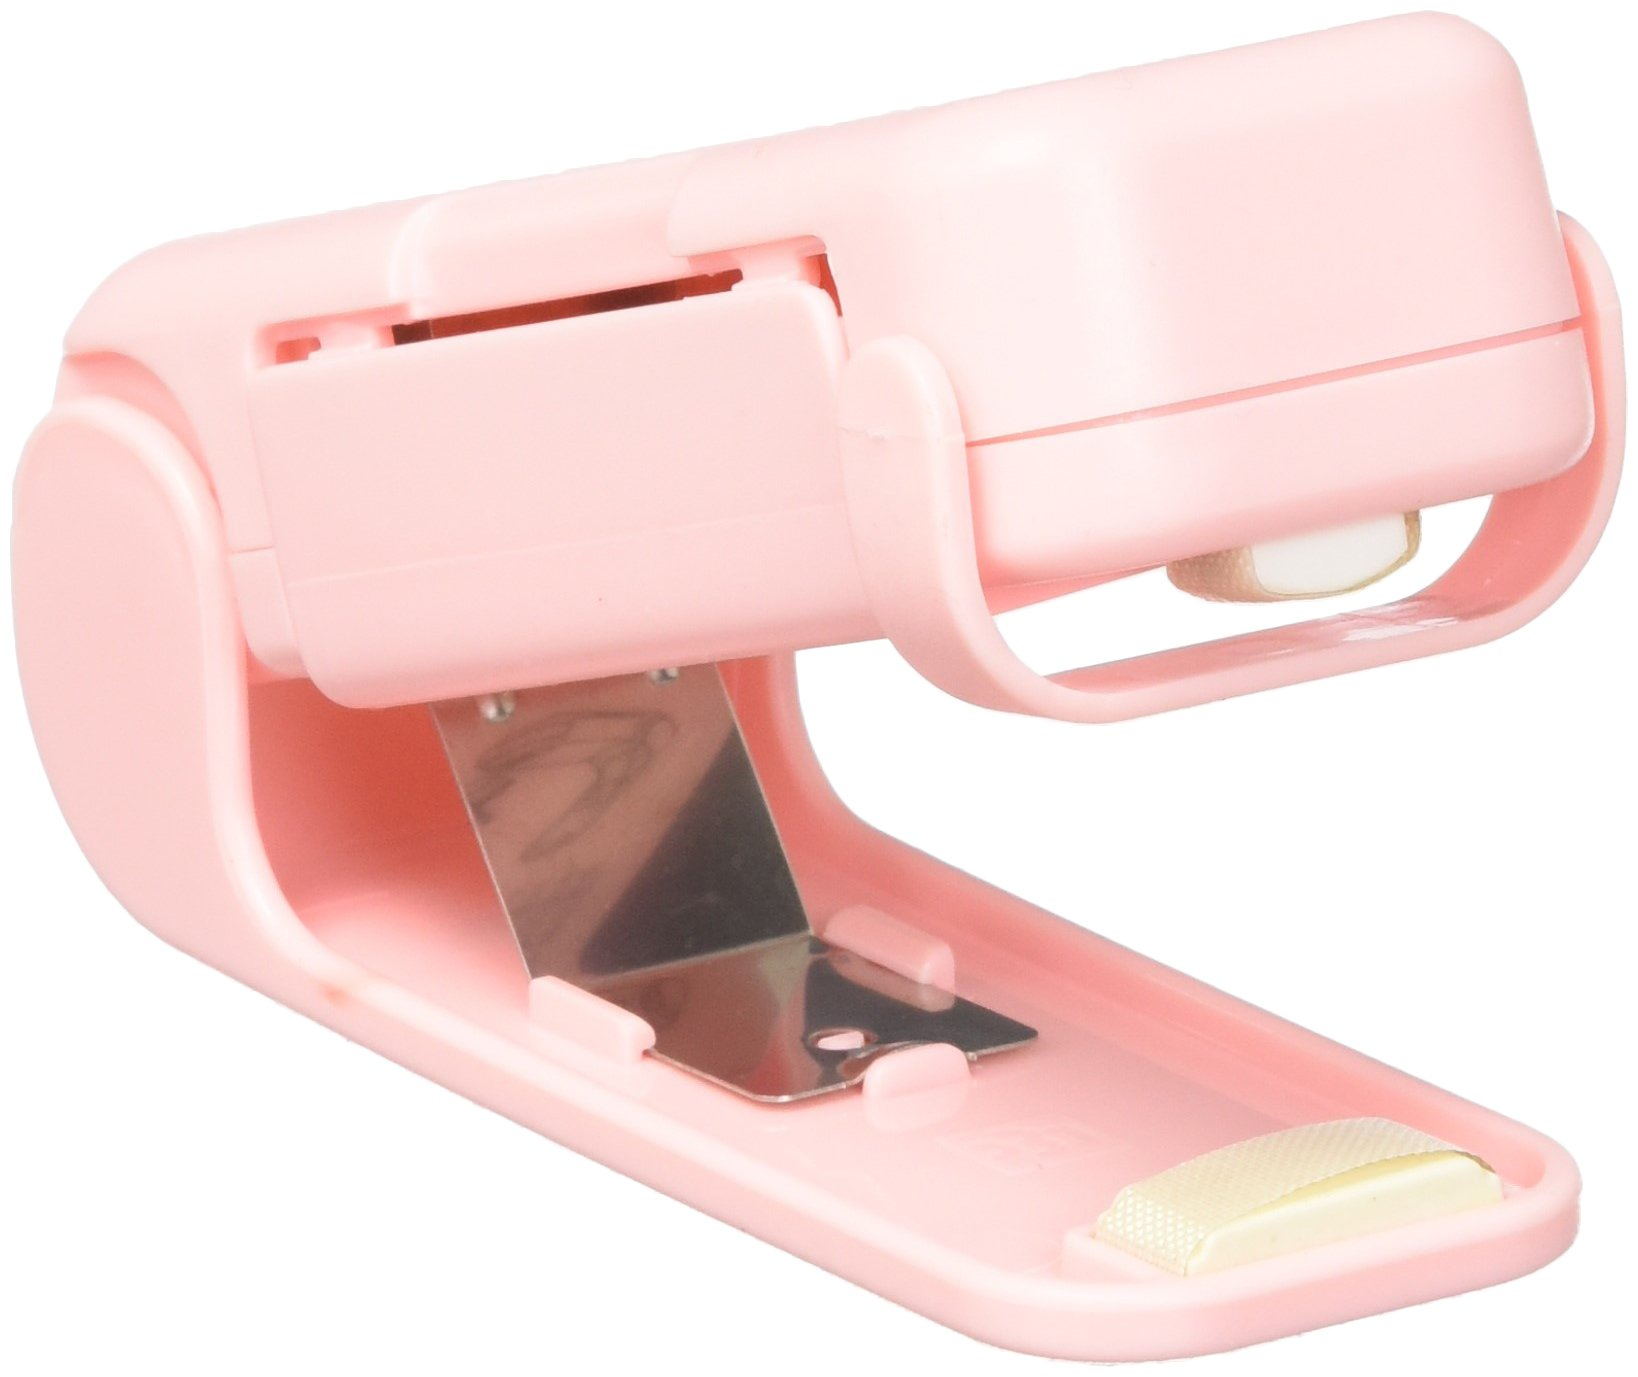 Cook@Home Portable Mini Bag Heat Sealer and Food Saver - Pink (Battery not Included)